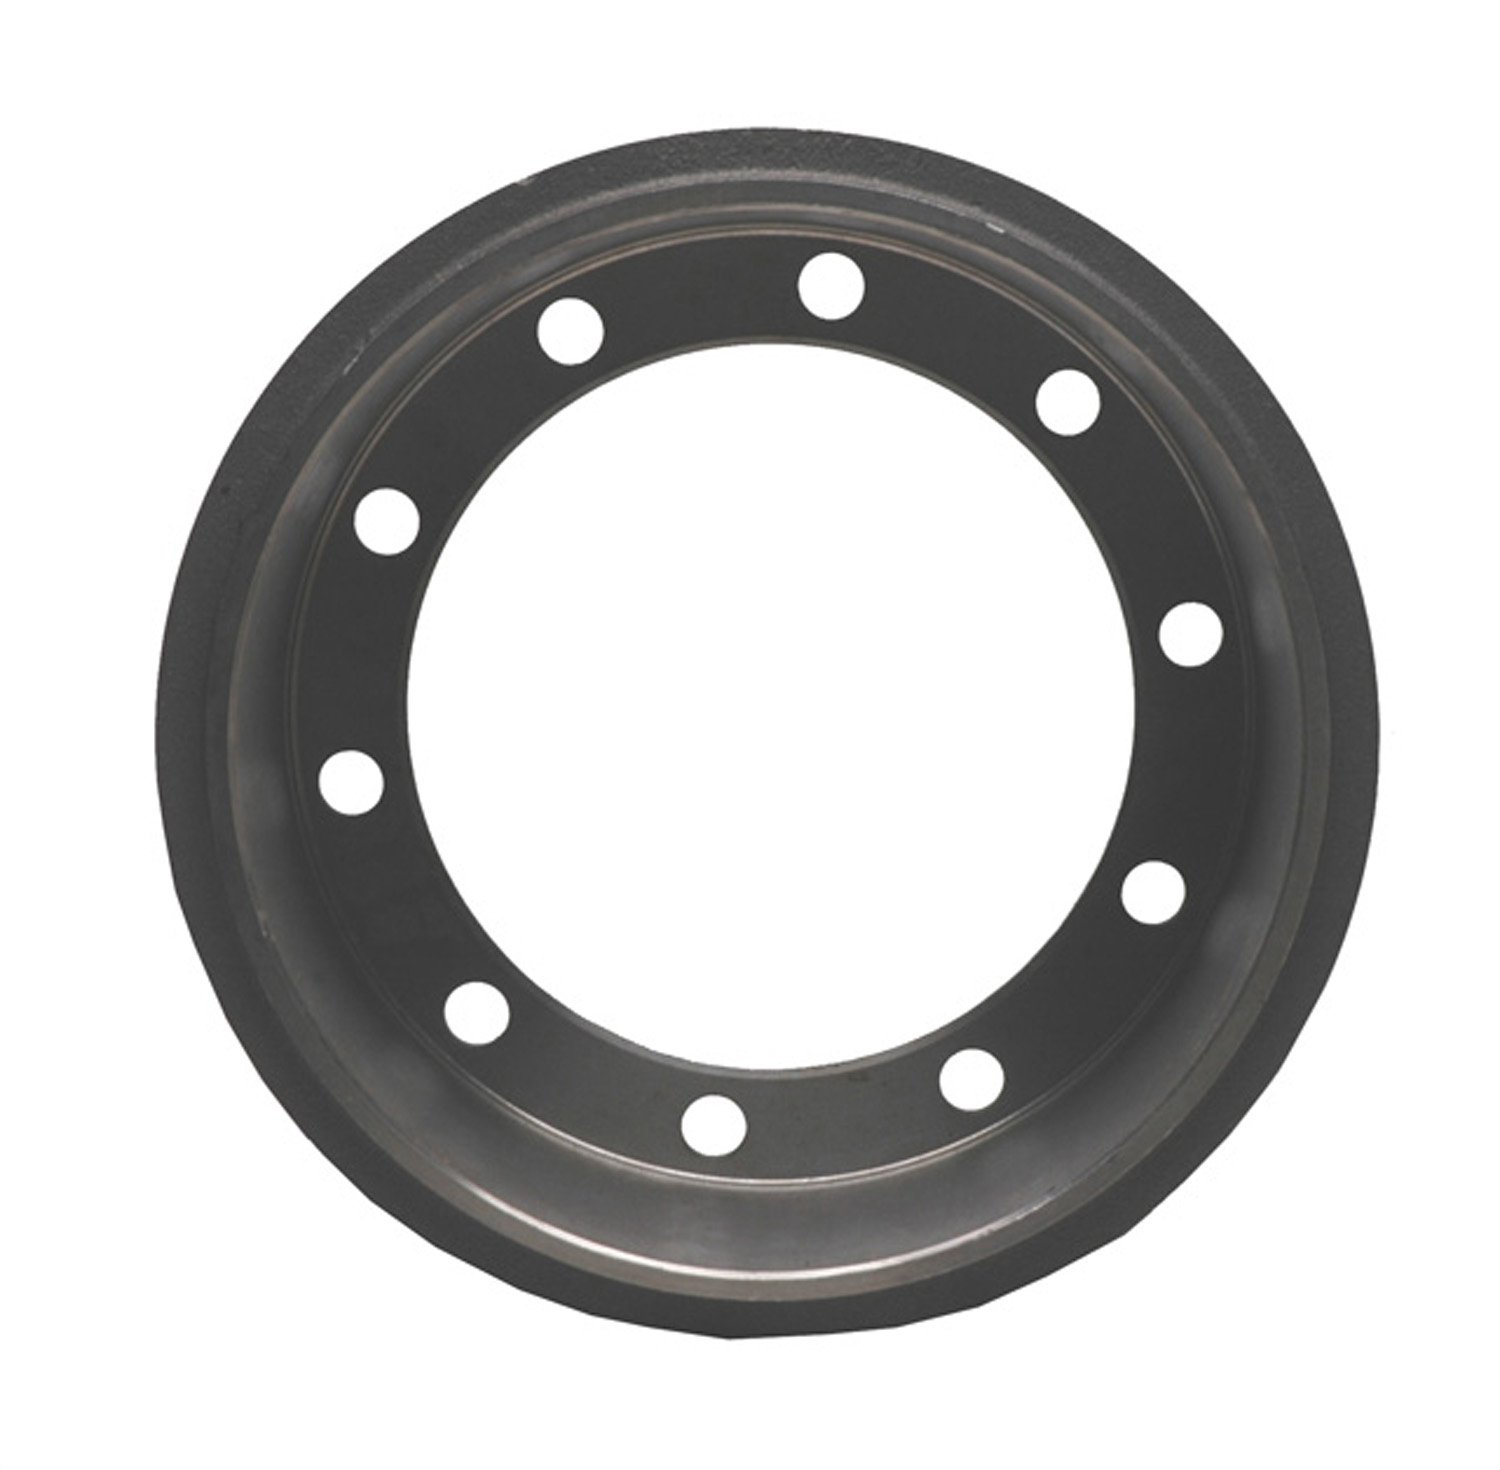 ACDelco 18B307 Professional Front Drilled Brake Drum